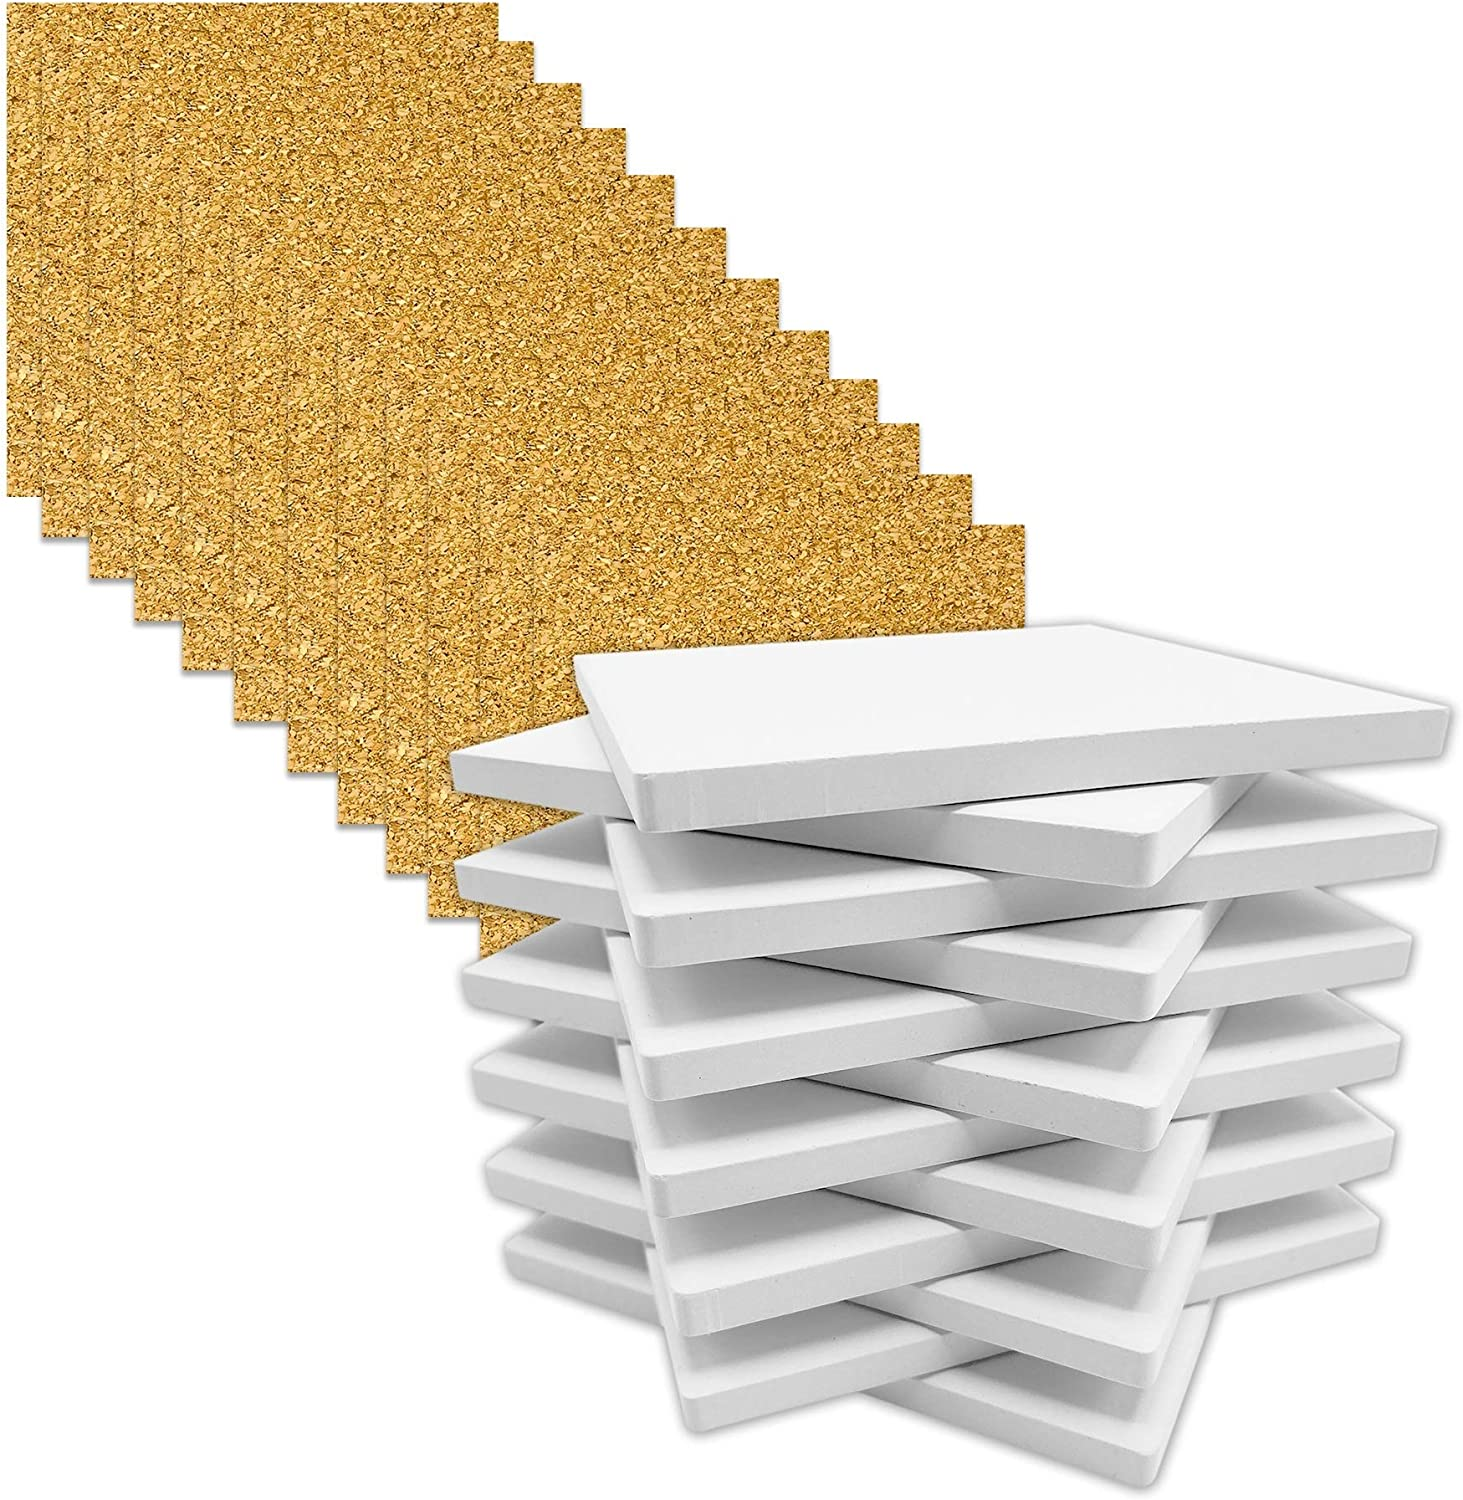 Raleigh Mall Coaster Tile Craft Kit Set Max 86% OFF of Matte 12 Smooth Ceramic Un-Glazed